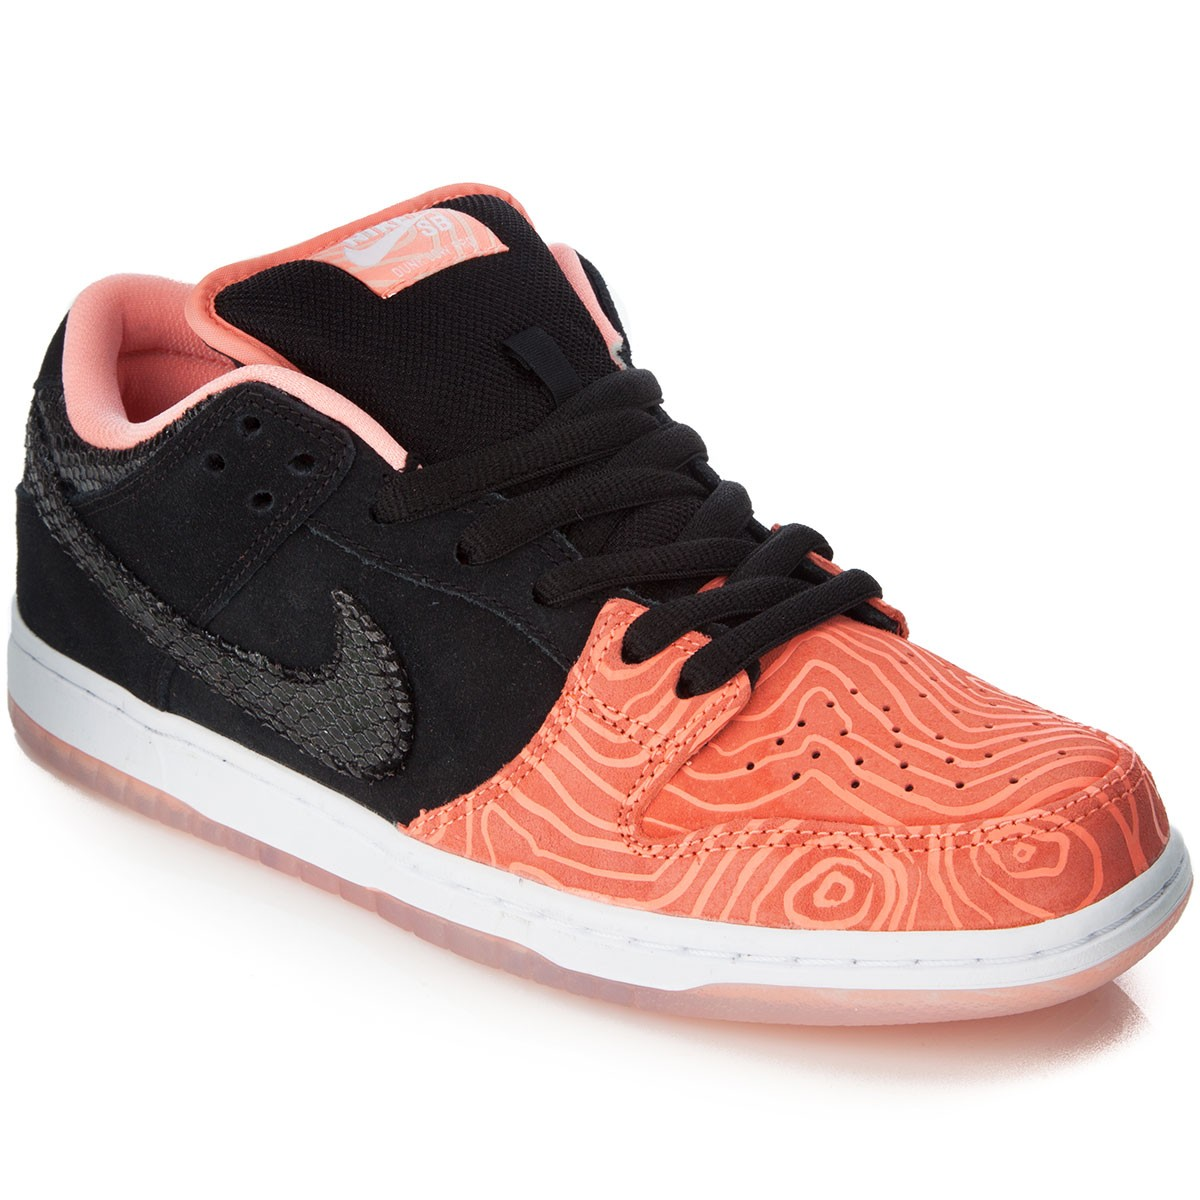 Are Youth   Shoes Same As Men